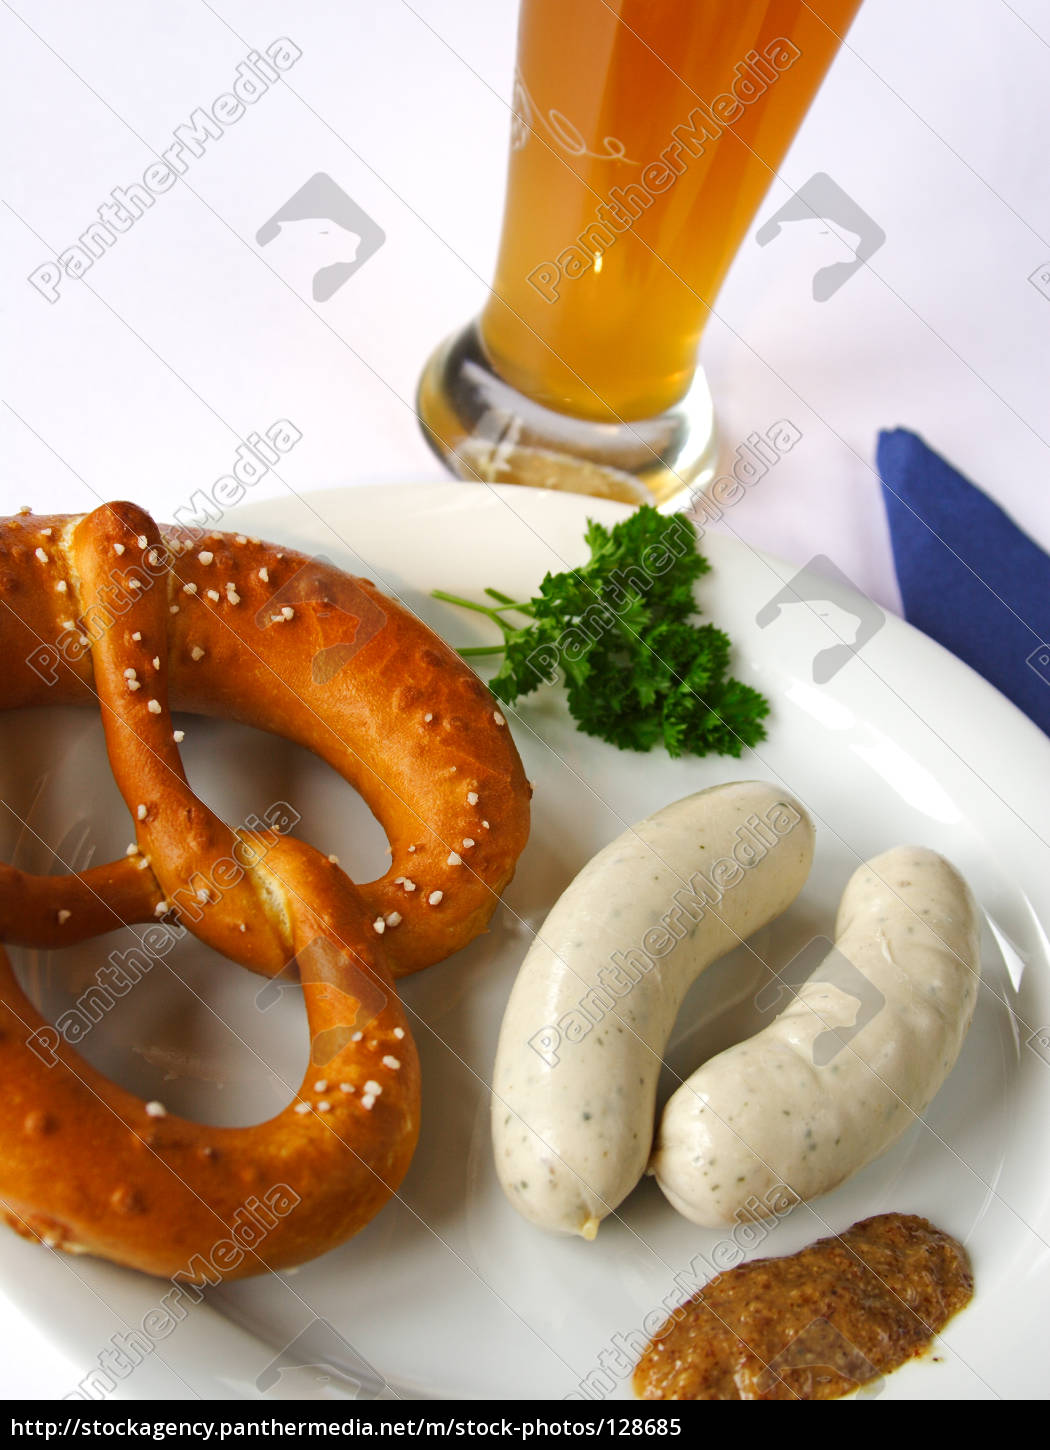 white, sausage, breakfast - 128685